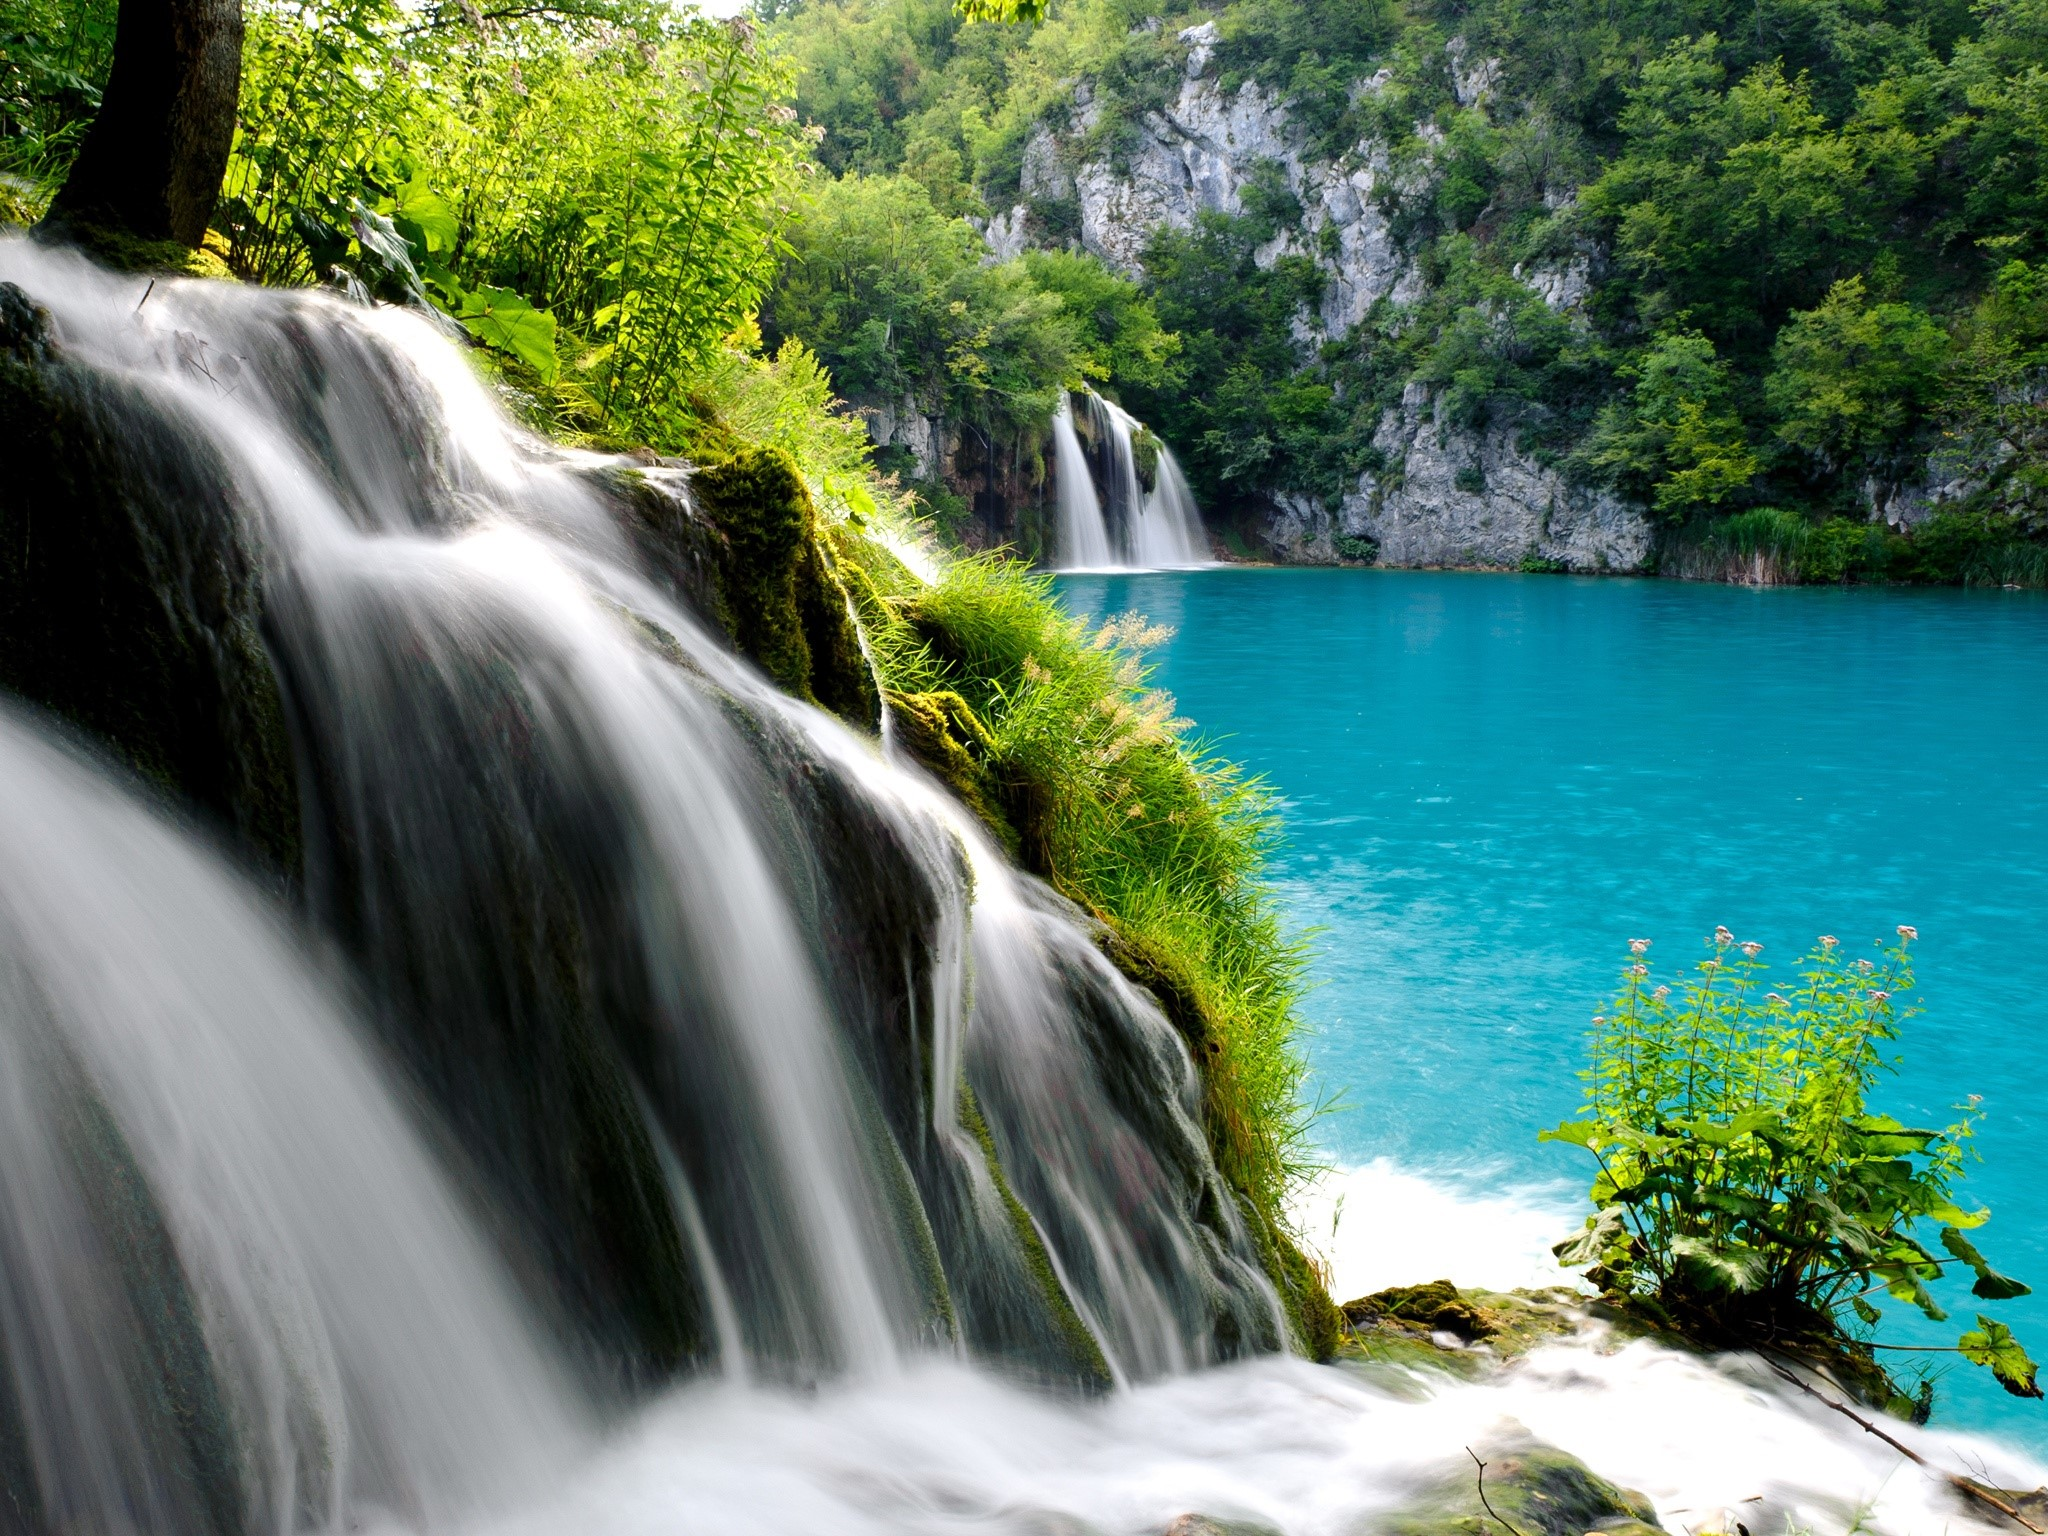 Wallpaper Plitvice Lakes National Park